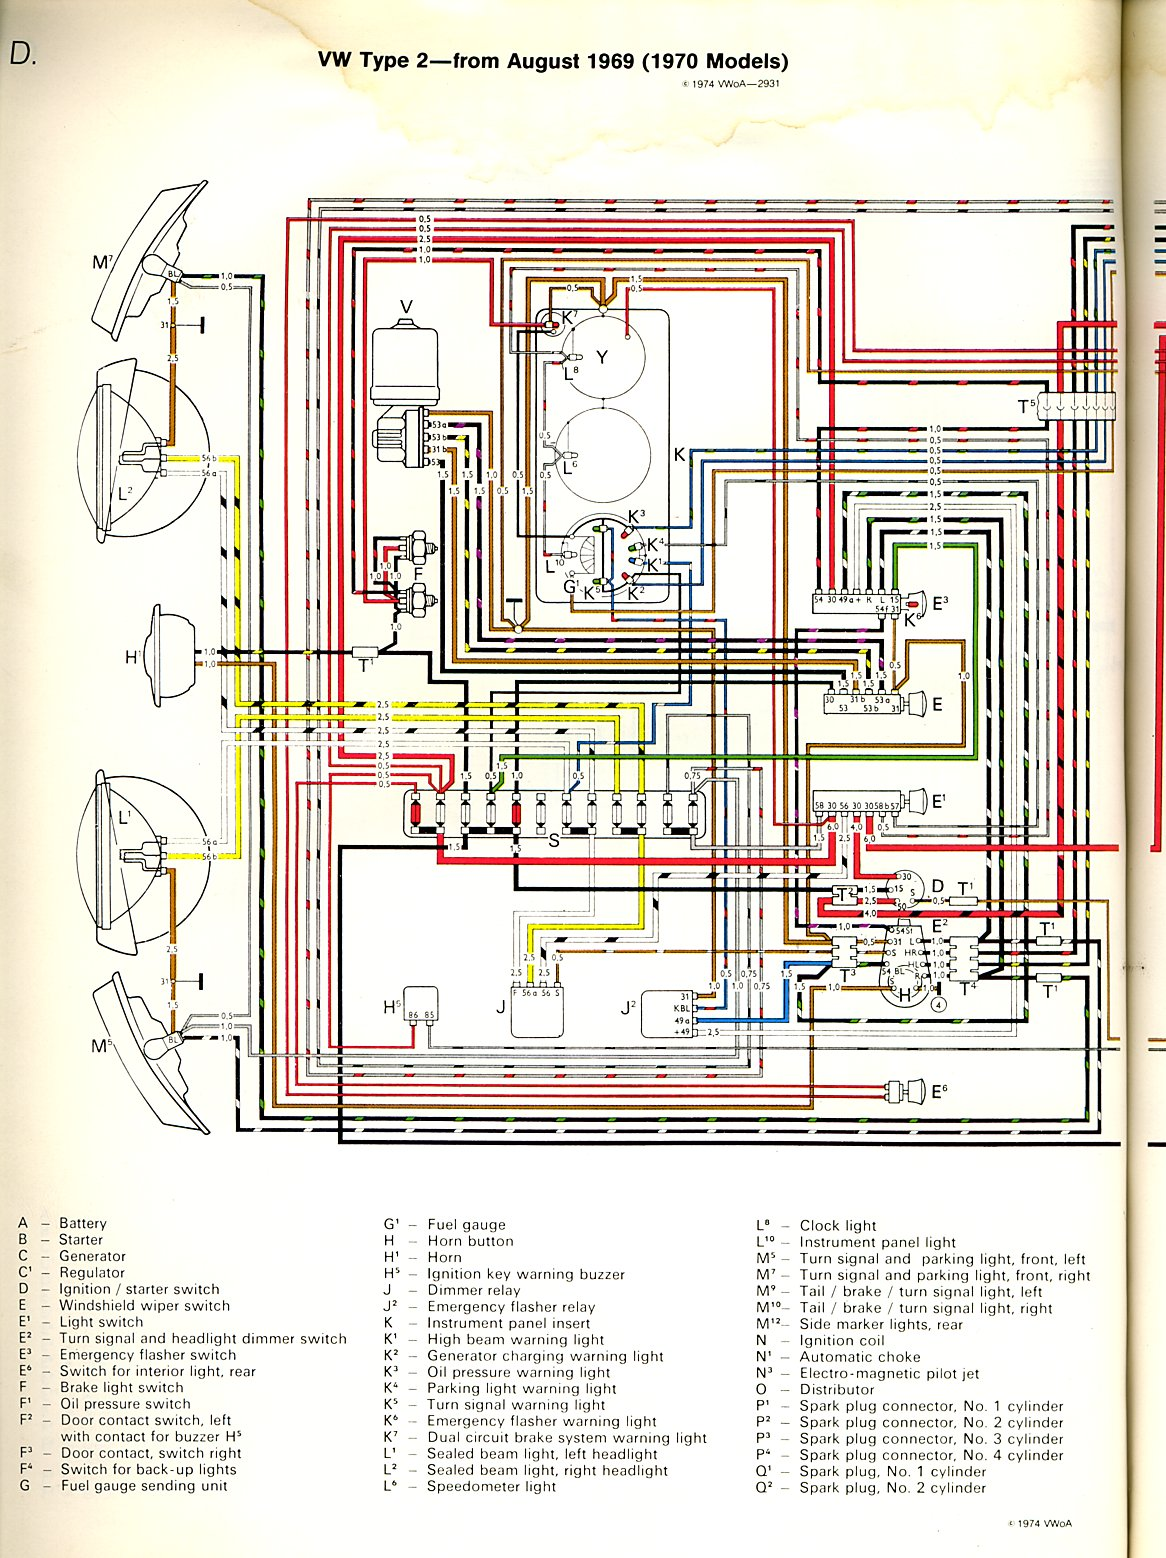 1972 Ford Mustang Tach Wiring Library Diagram Vw Bus Trusted Diagrams Rh Chicagoitalianrestaurants Com